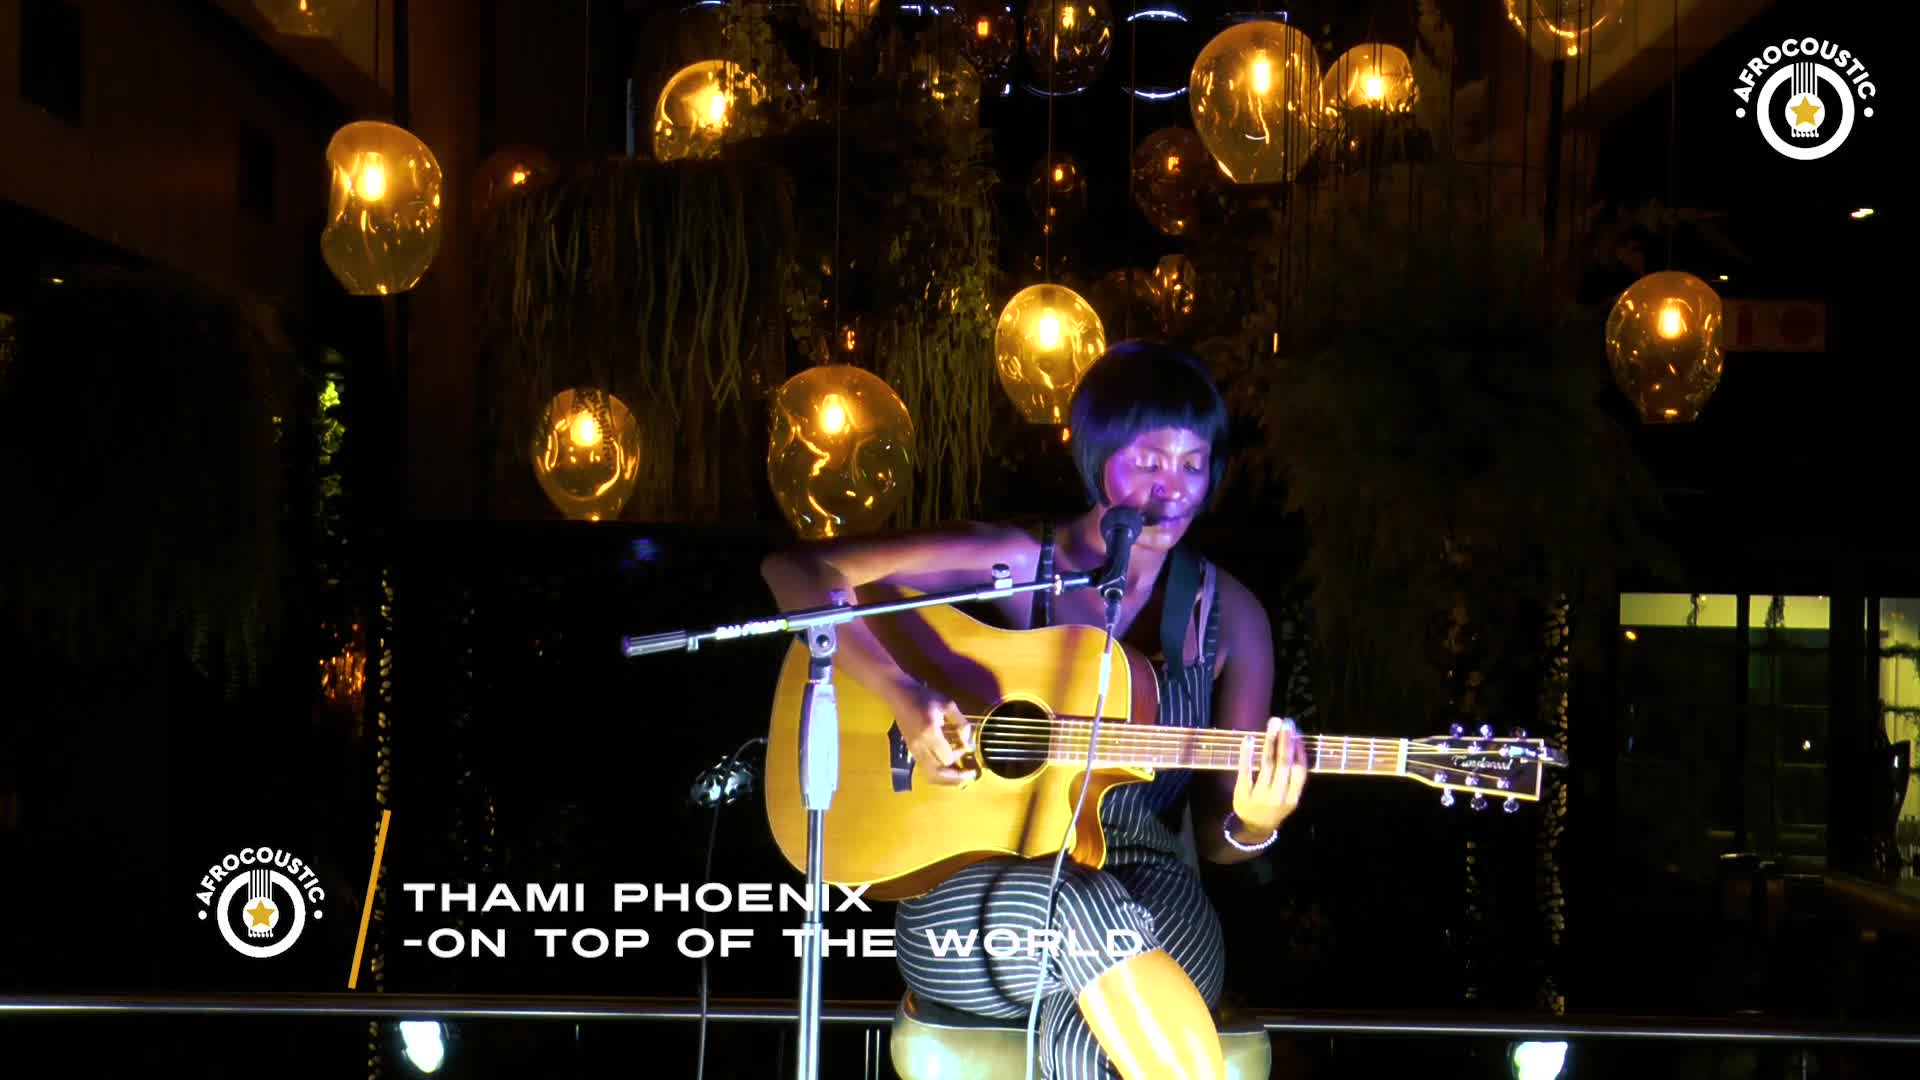 Afrocoustic - Thami Phoenix - On Top Of The World